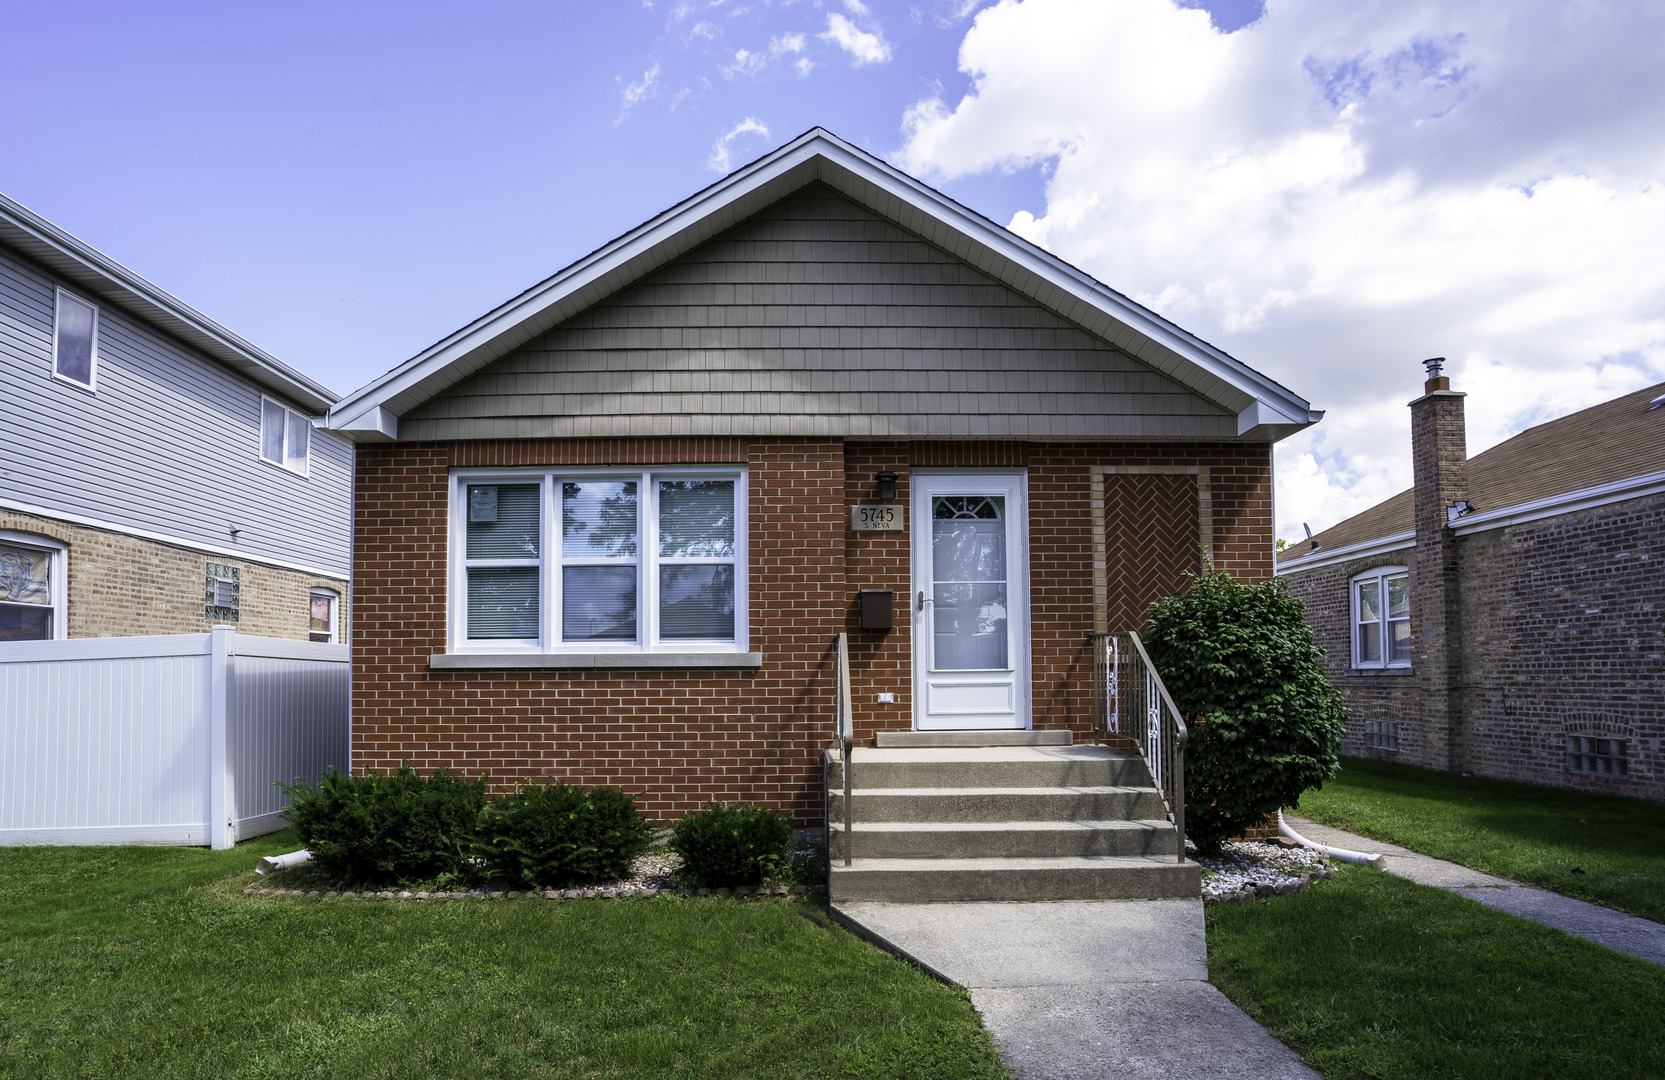 5745 S NEVA Avenue, Chicago IL 60638